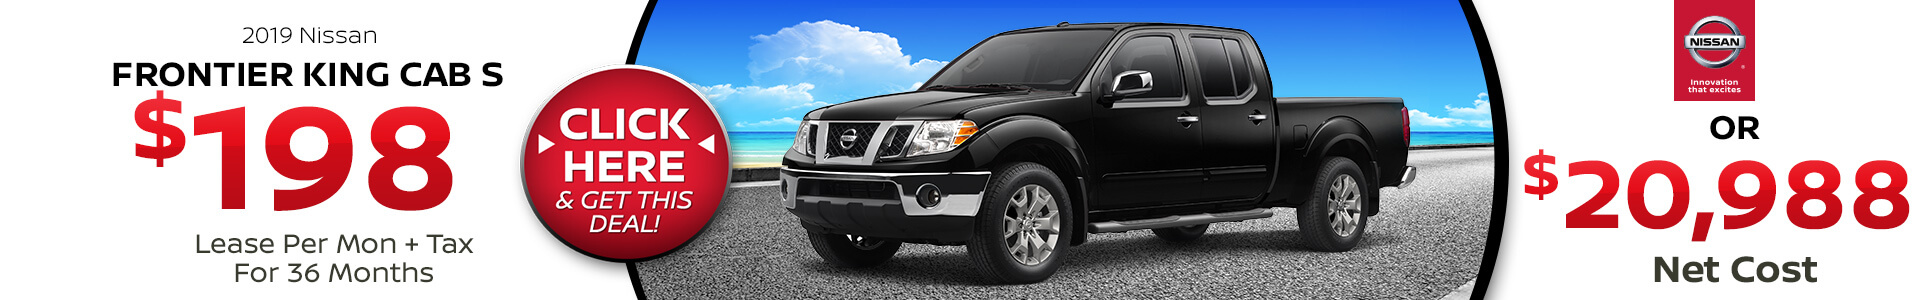 Nissan Frontier $198 Lease